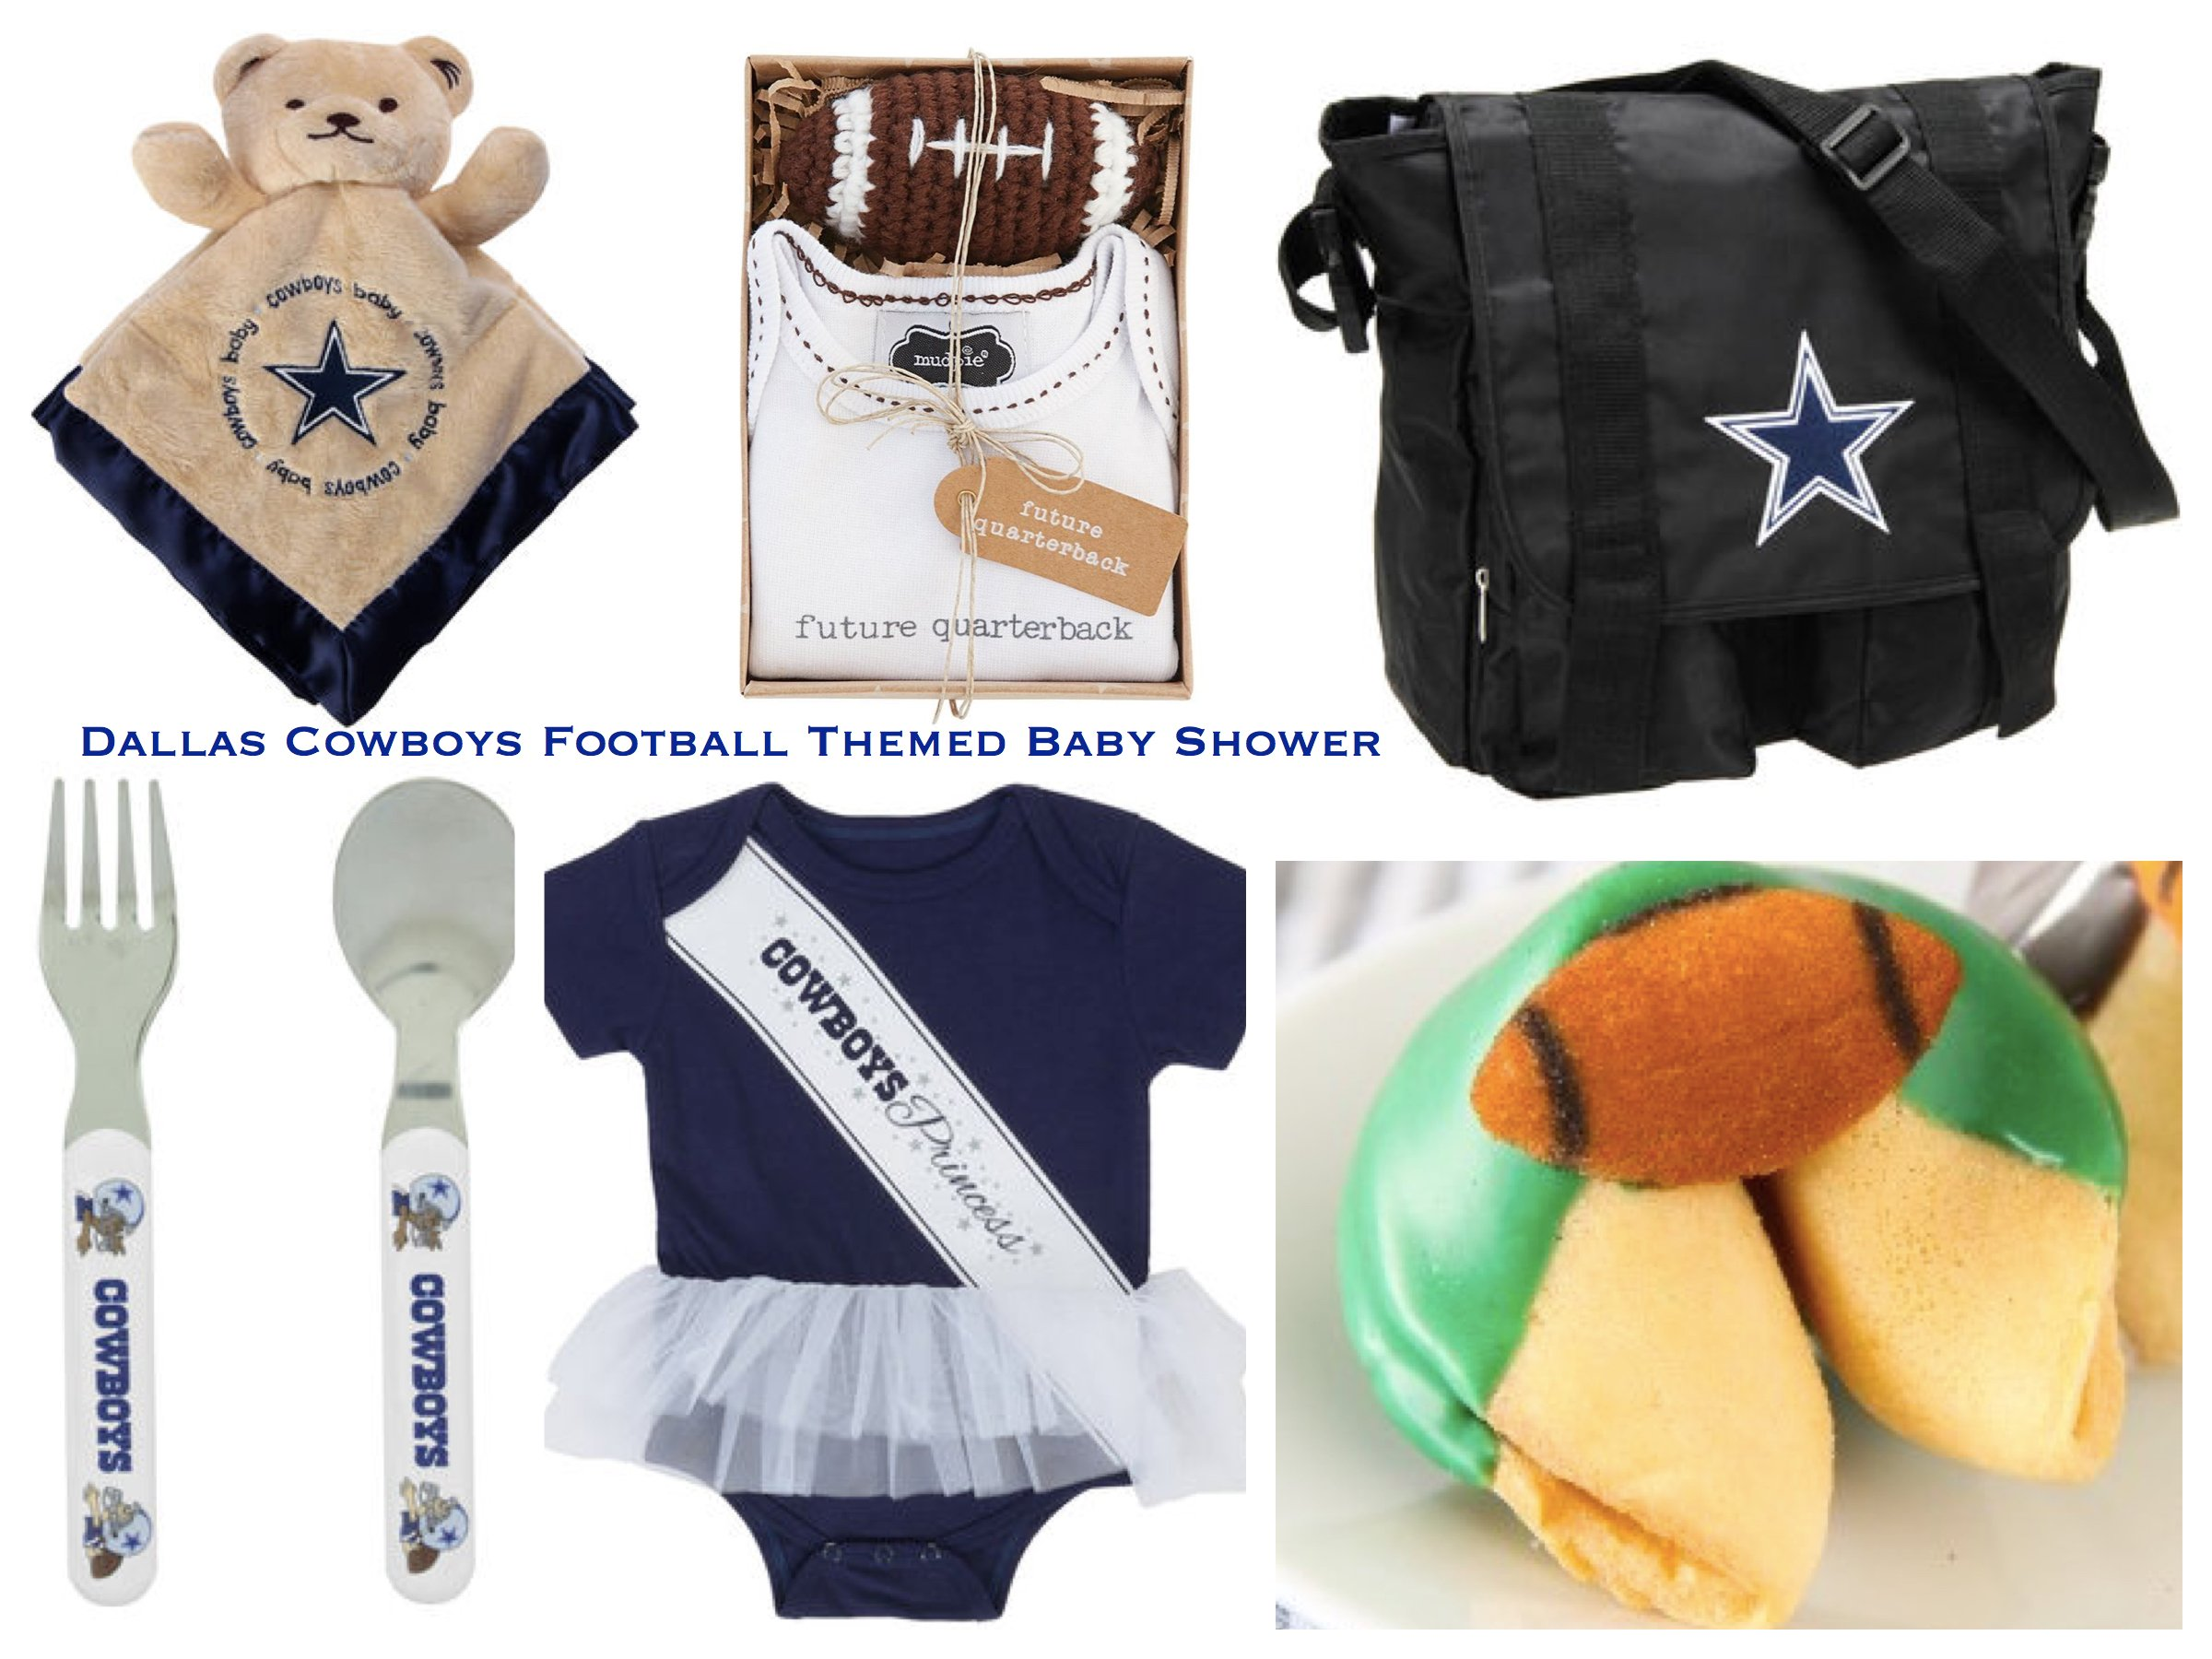 Dallas Cowboys Football Themed Baby Shower | PartyIdeaPros.com